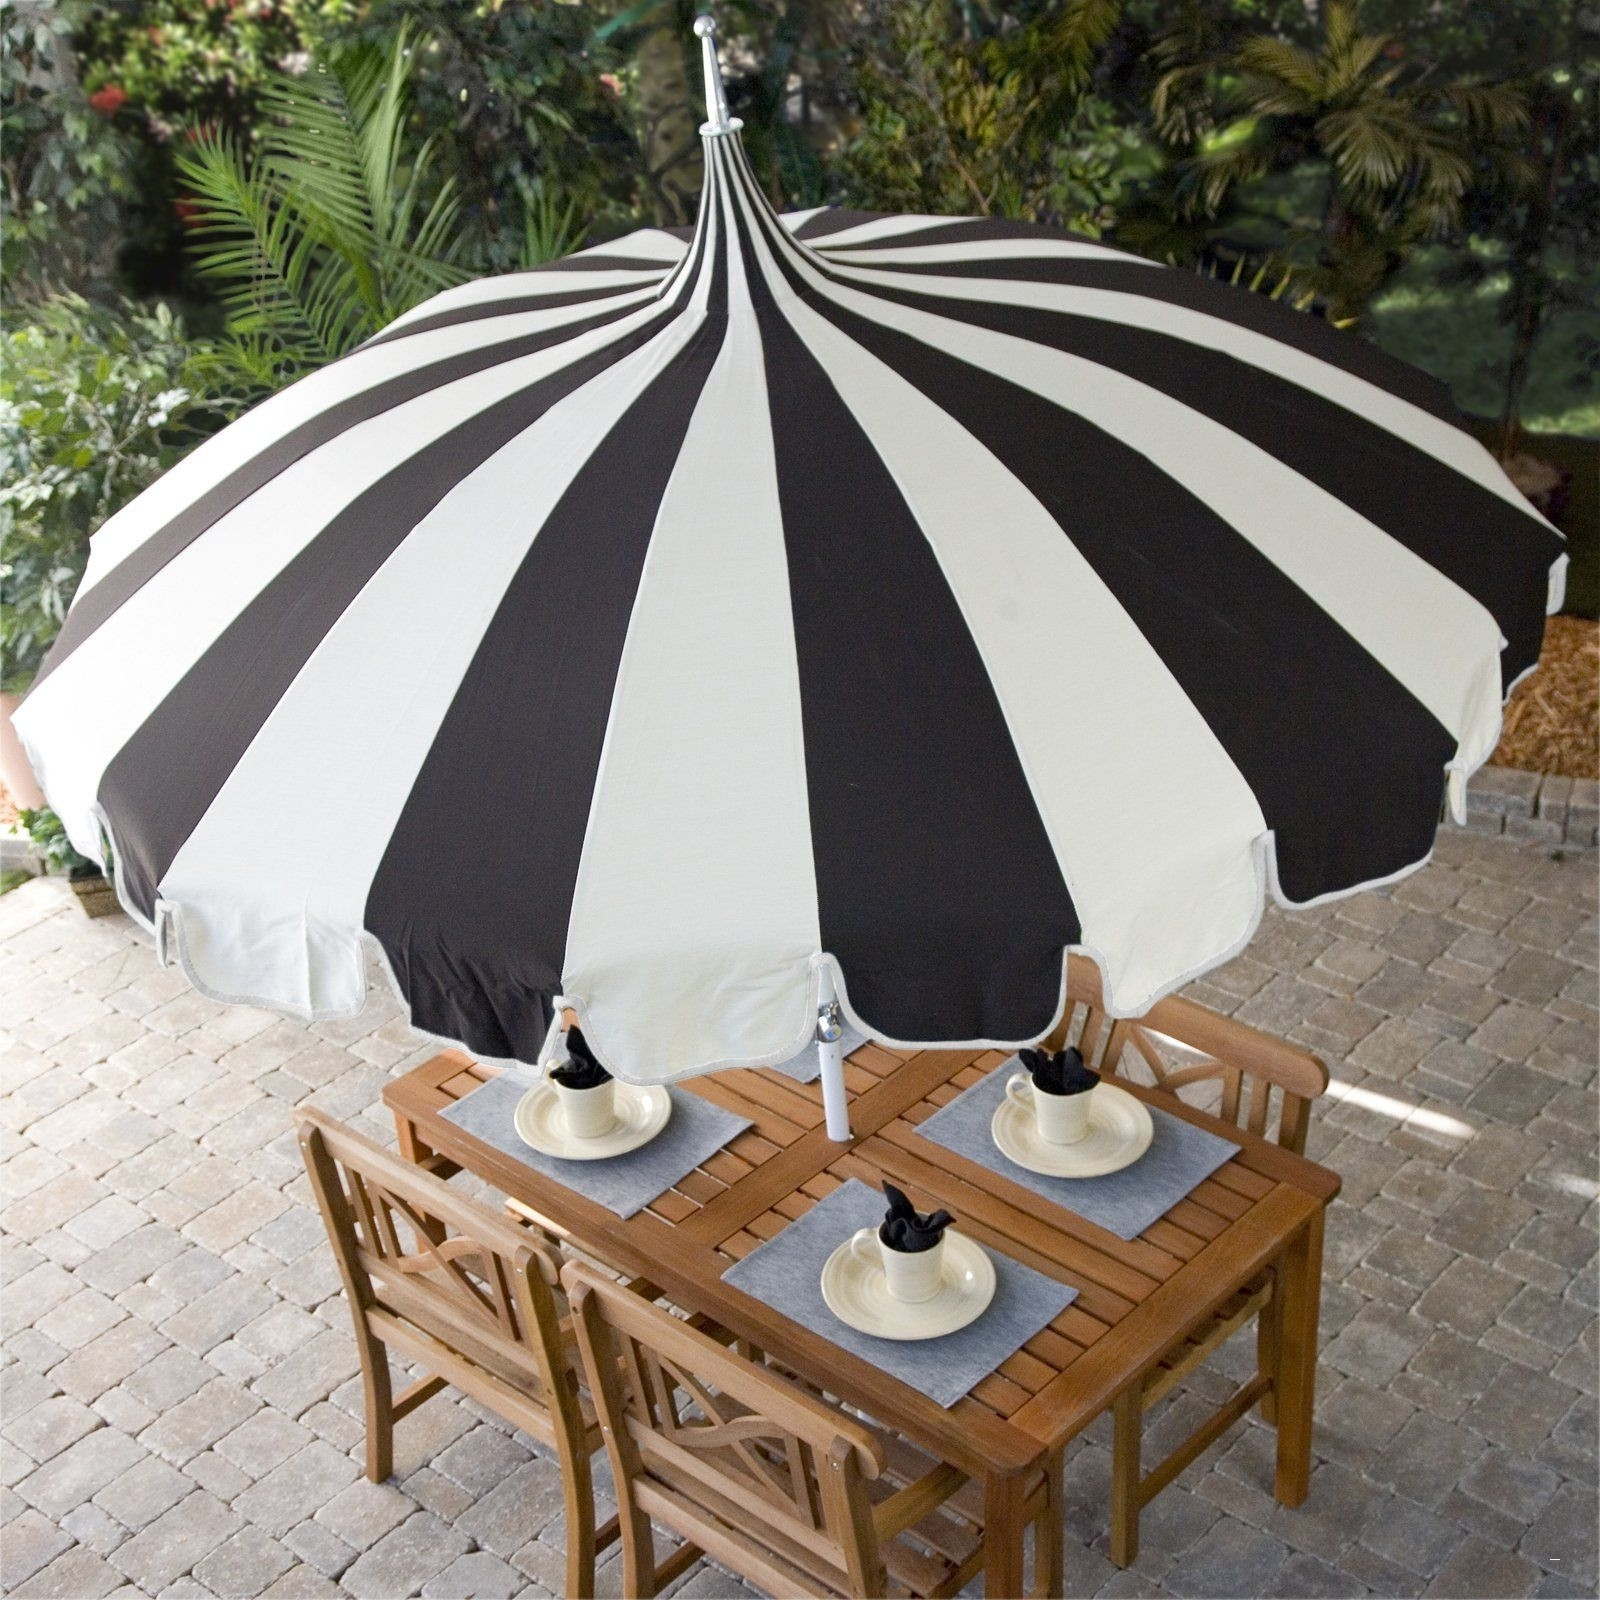 Popular Striped Patio Umbrellas Regarding 20 Amazing Striped Patio Umbrella Patio Furniture Concept Of 6 Ft (View 9 of 20)